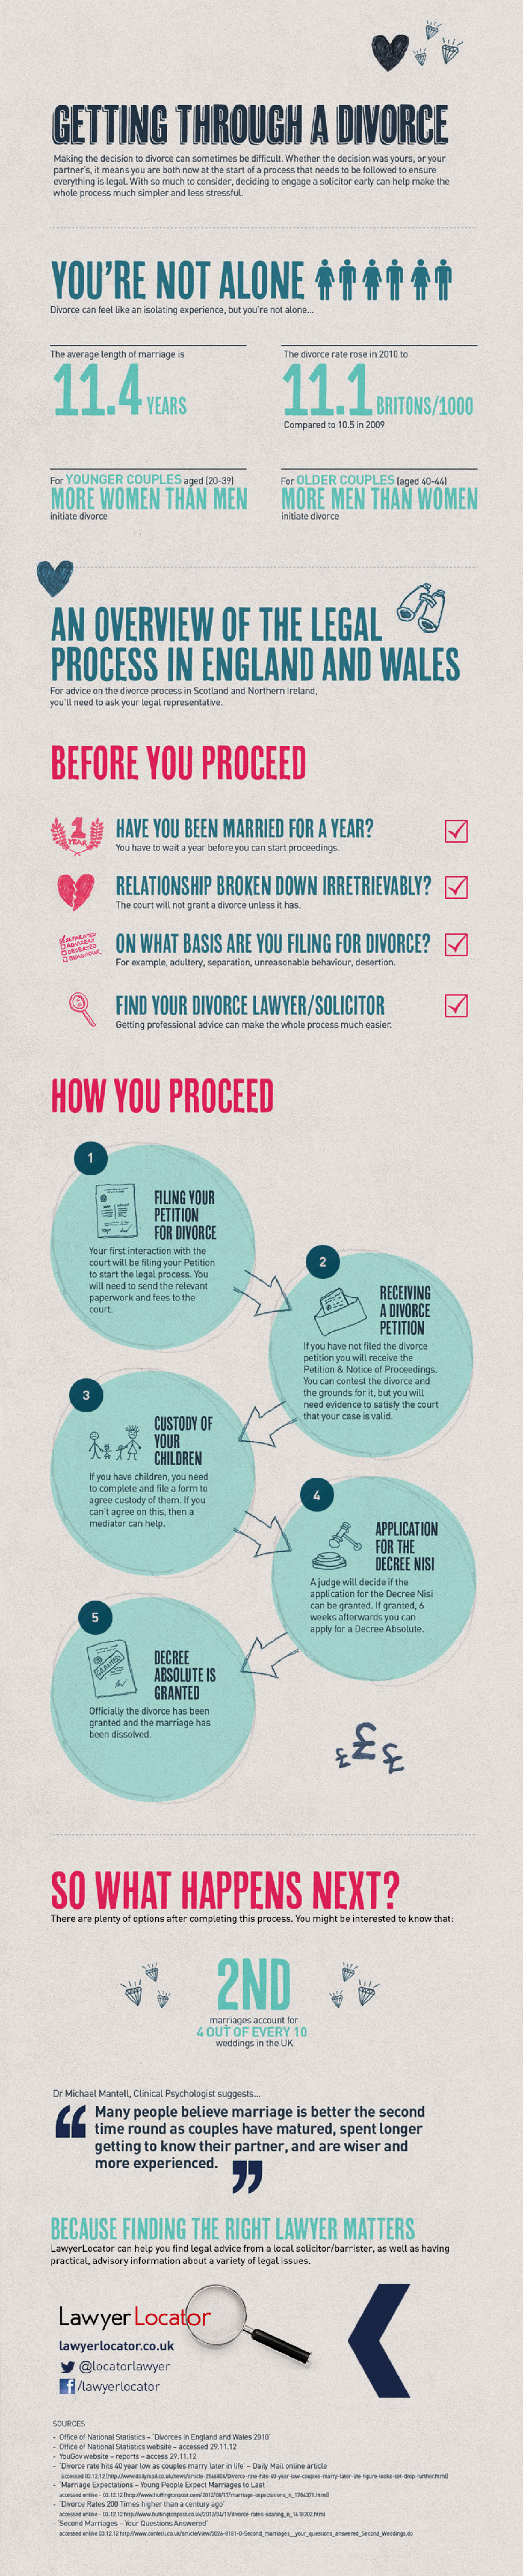 Getting through a divorce Infographic